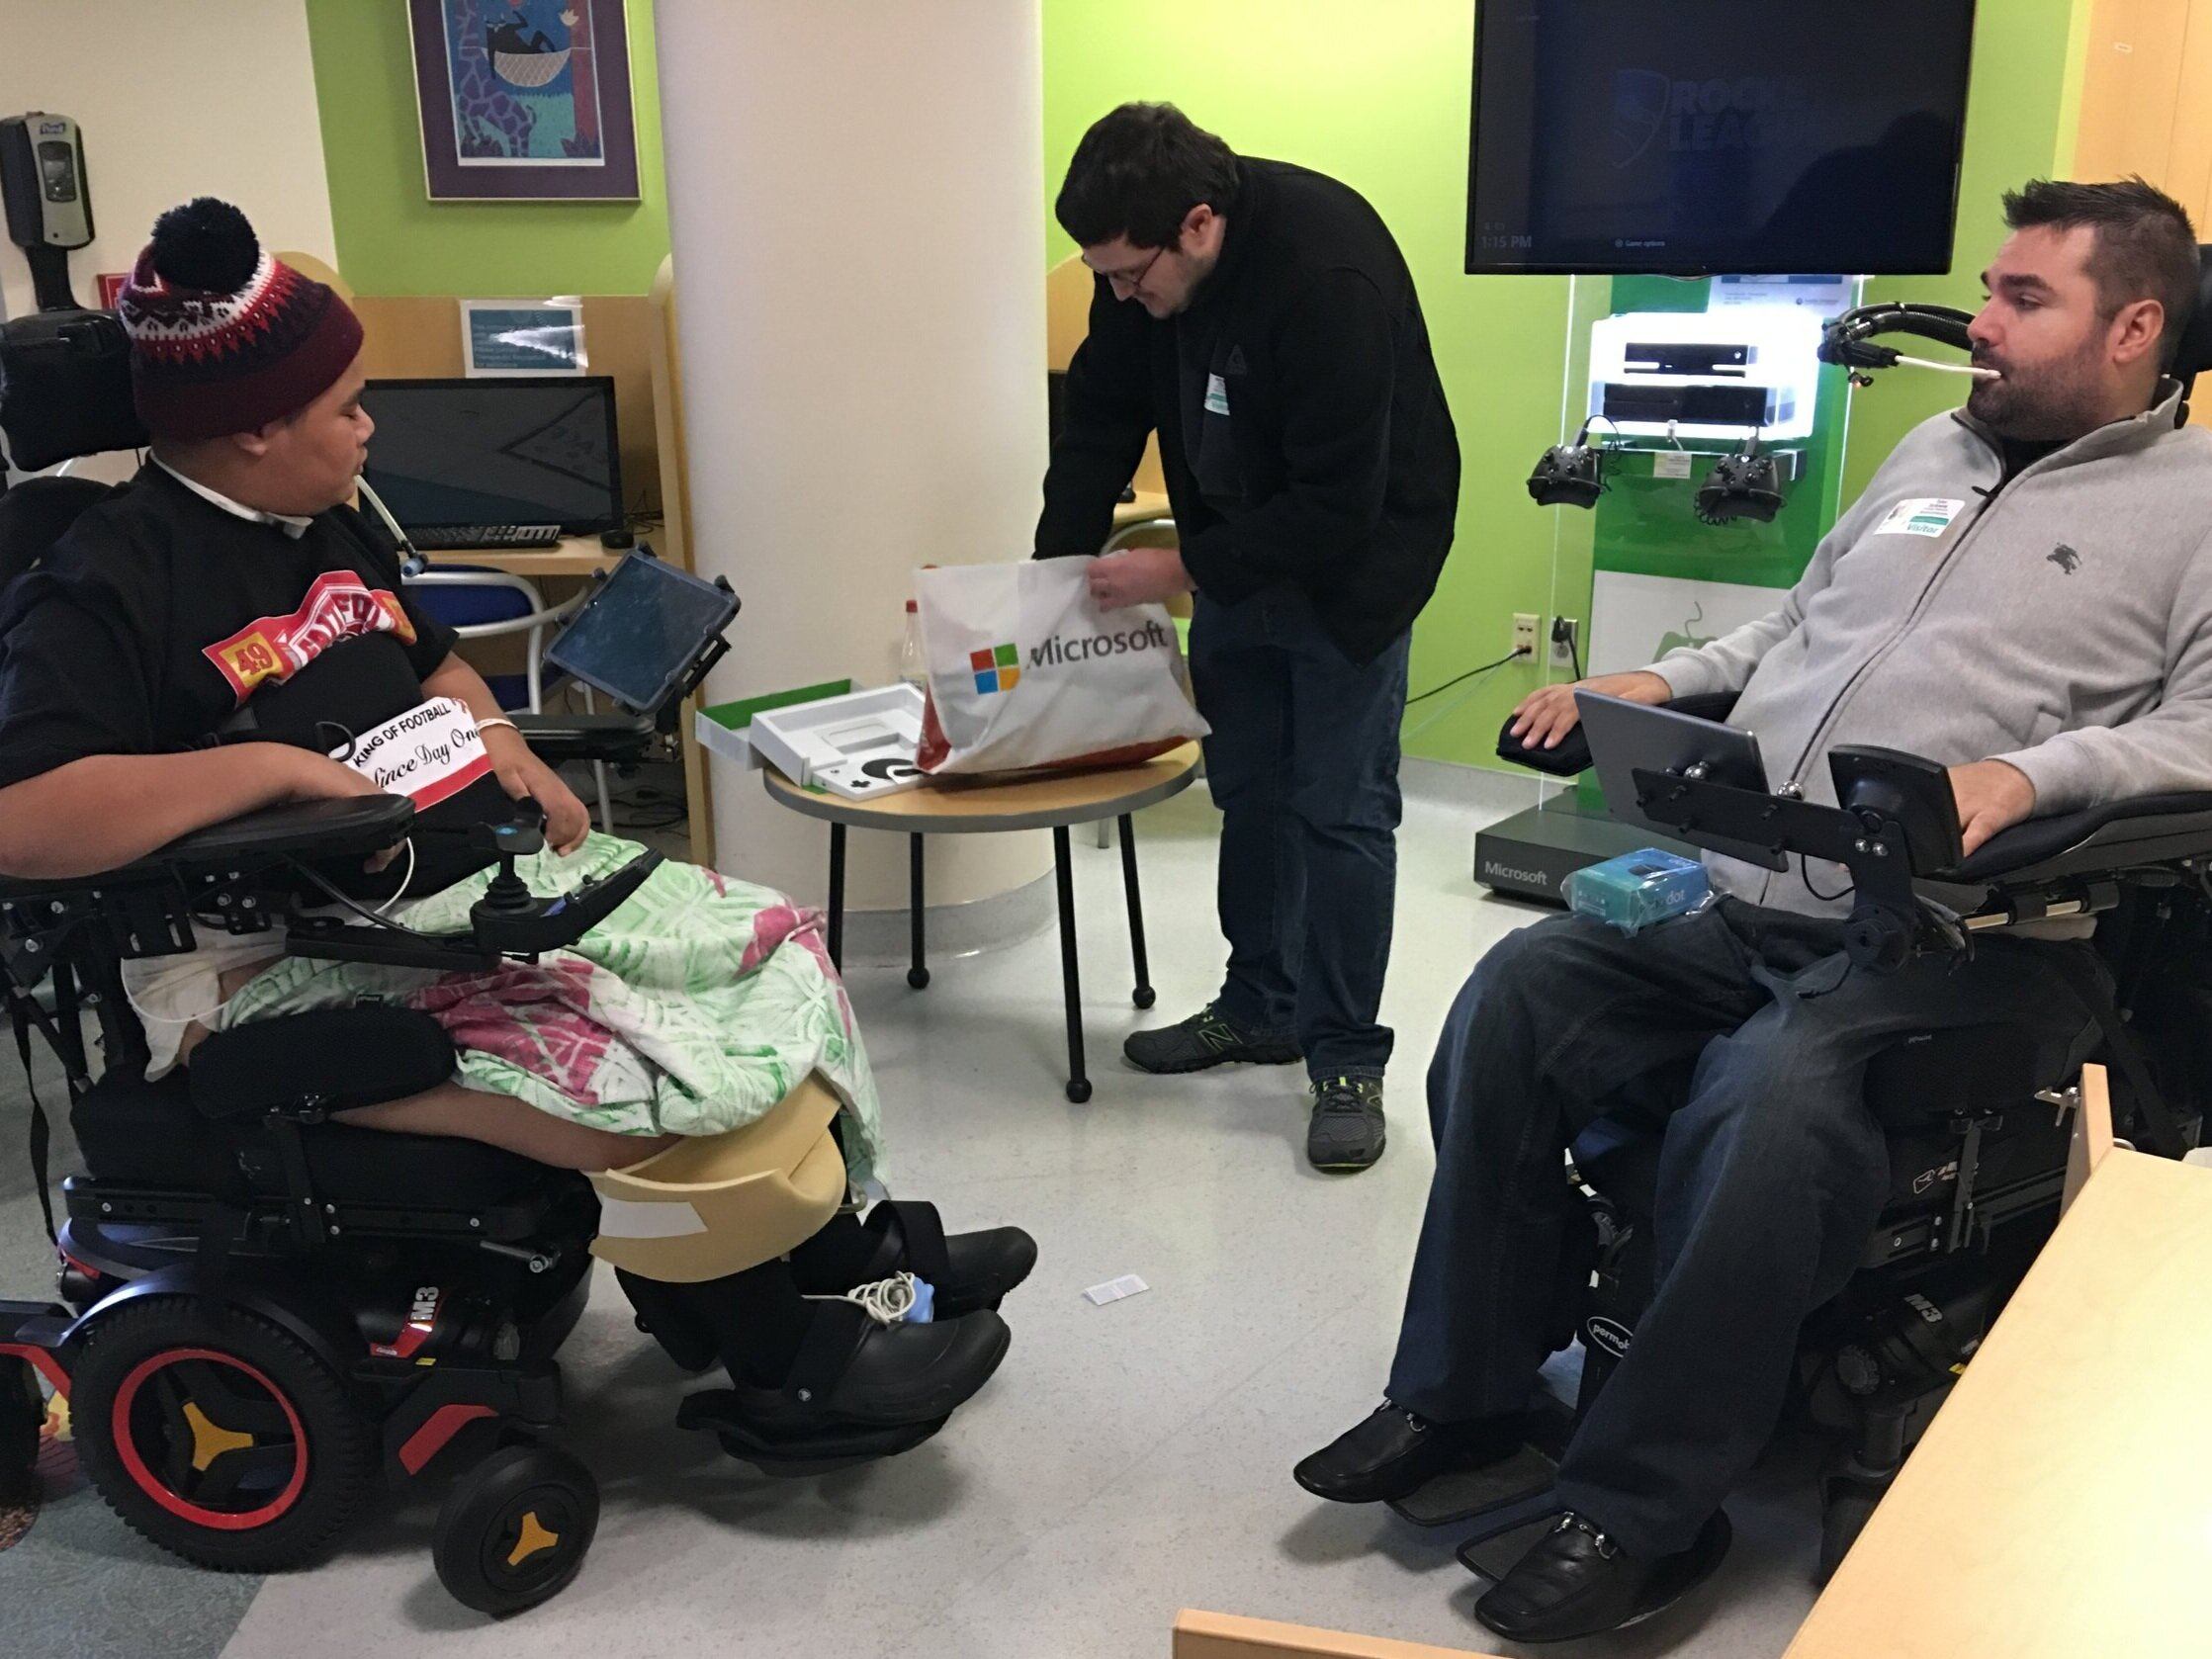 Maui (left), Matt Hite (center), and Tyler Schrenk (right).  Maui was a recipient of TSF's Demonstrating Independence Grant, receiving an Xbox Adaptive Controller that enabled him to continue gaming after his spinal cord injury.  Read more here.